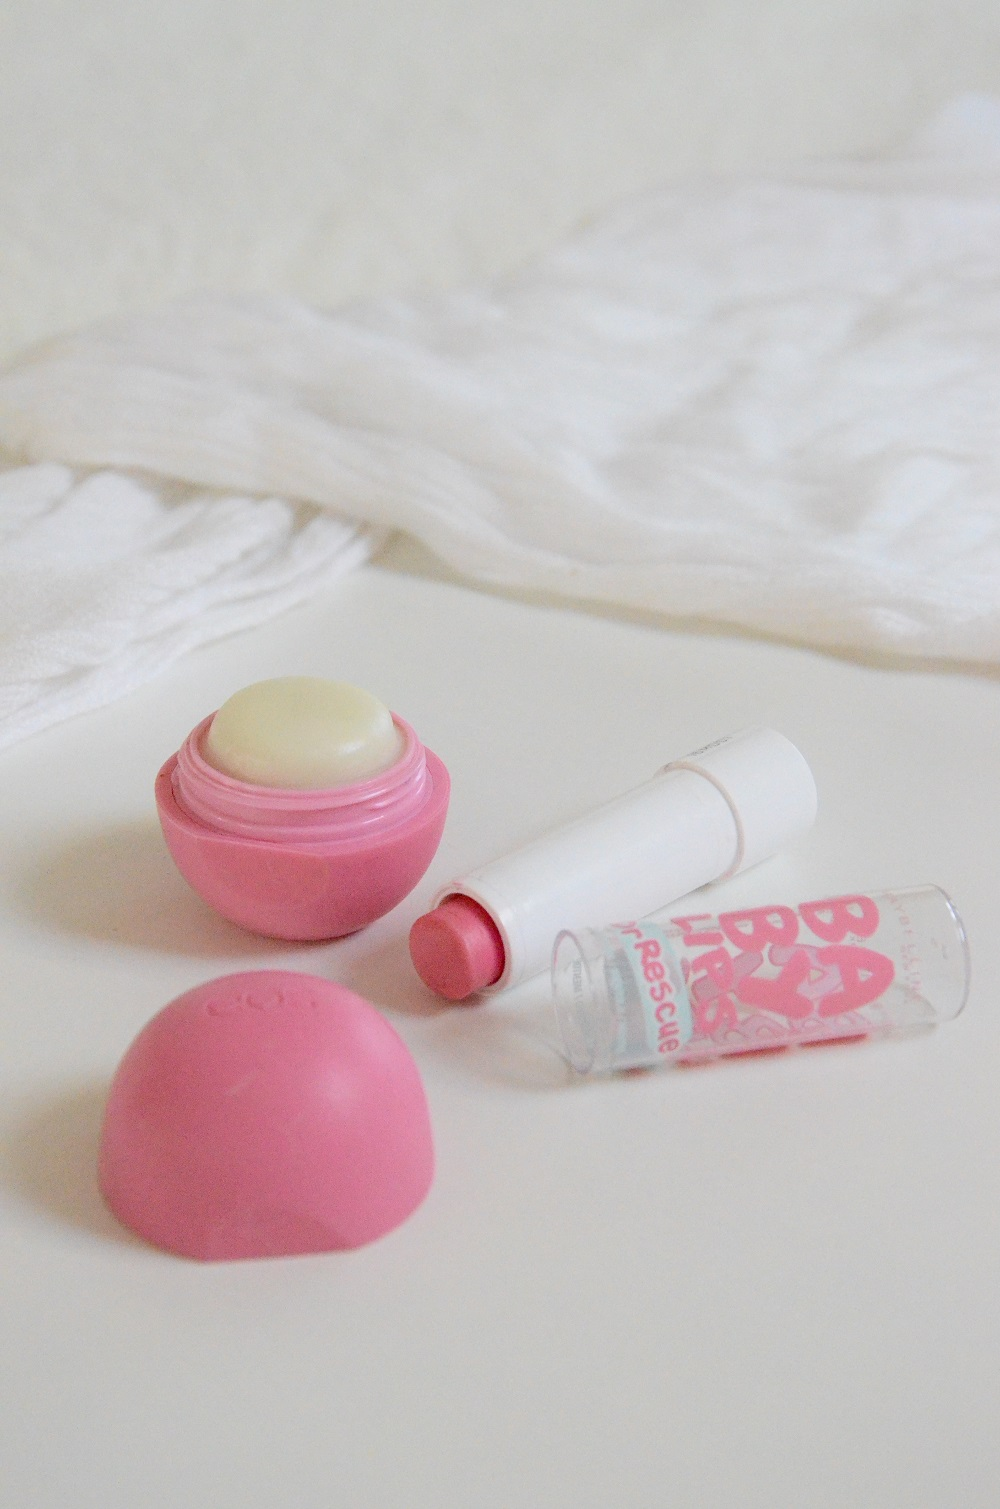 7 Winter Lip Care Tips How To Protect Your Lips From The